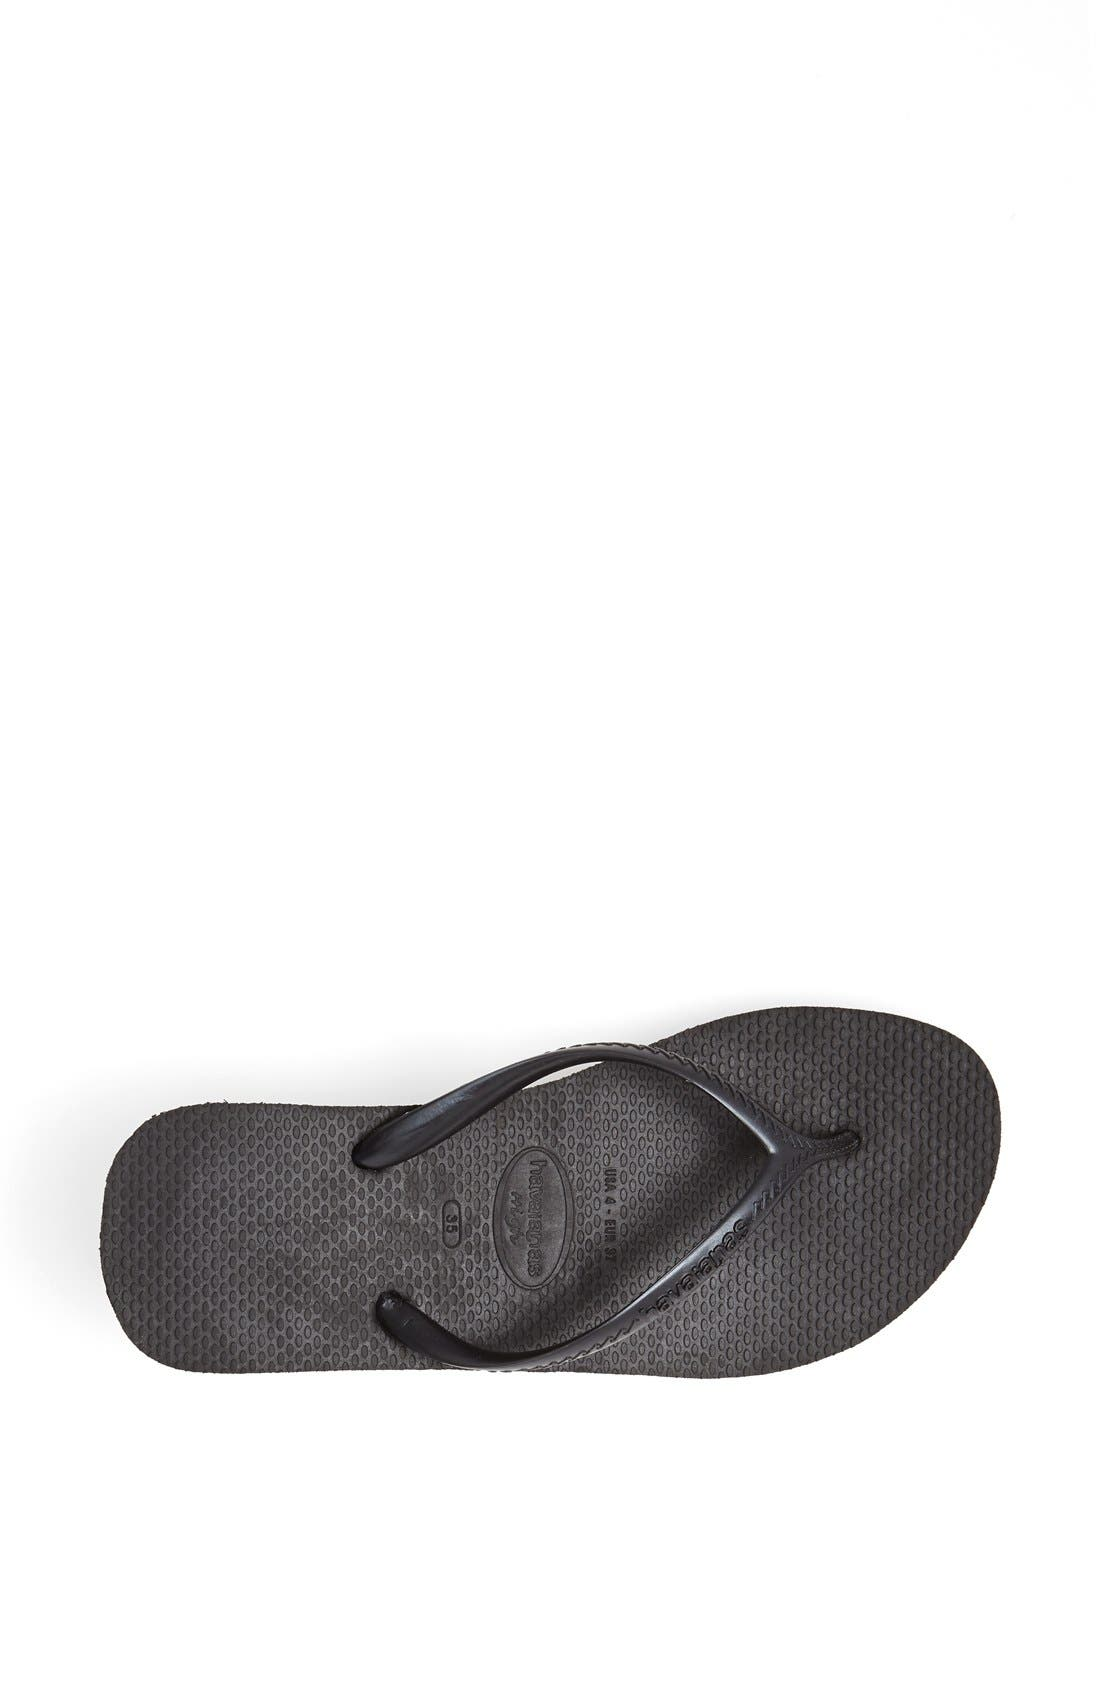 Alternate Image 3  - Havaianas 'High Fashion' Flip Flop